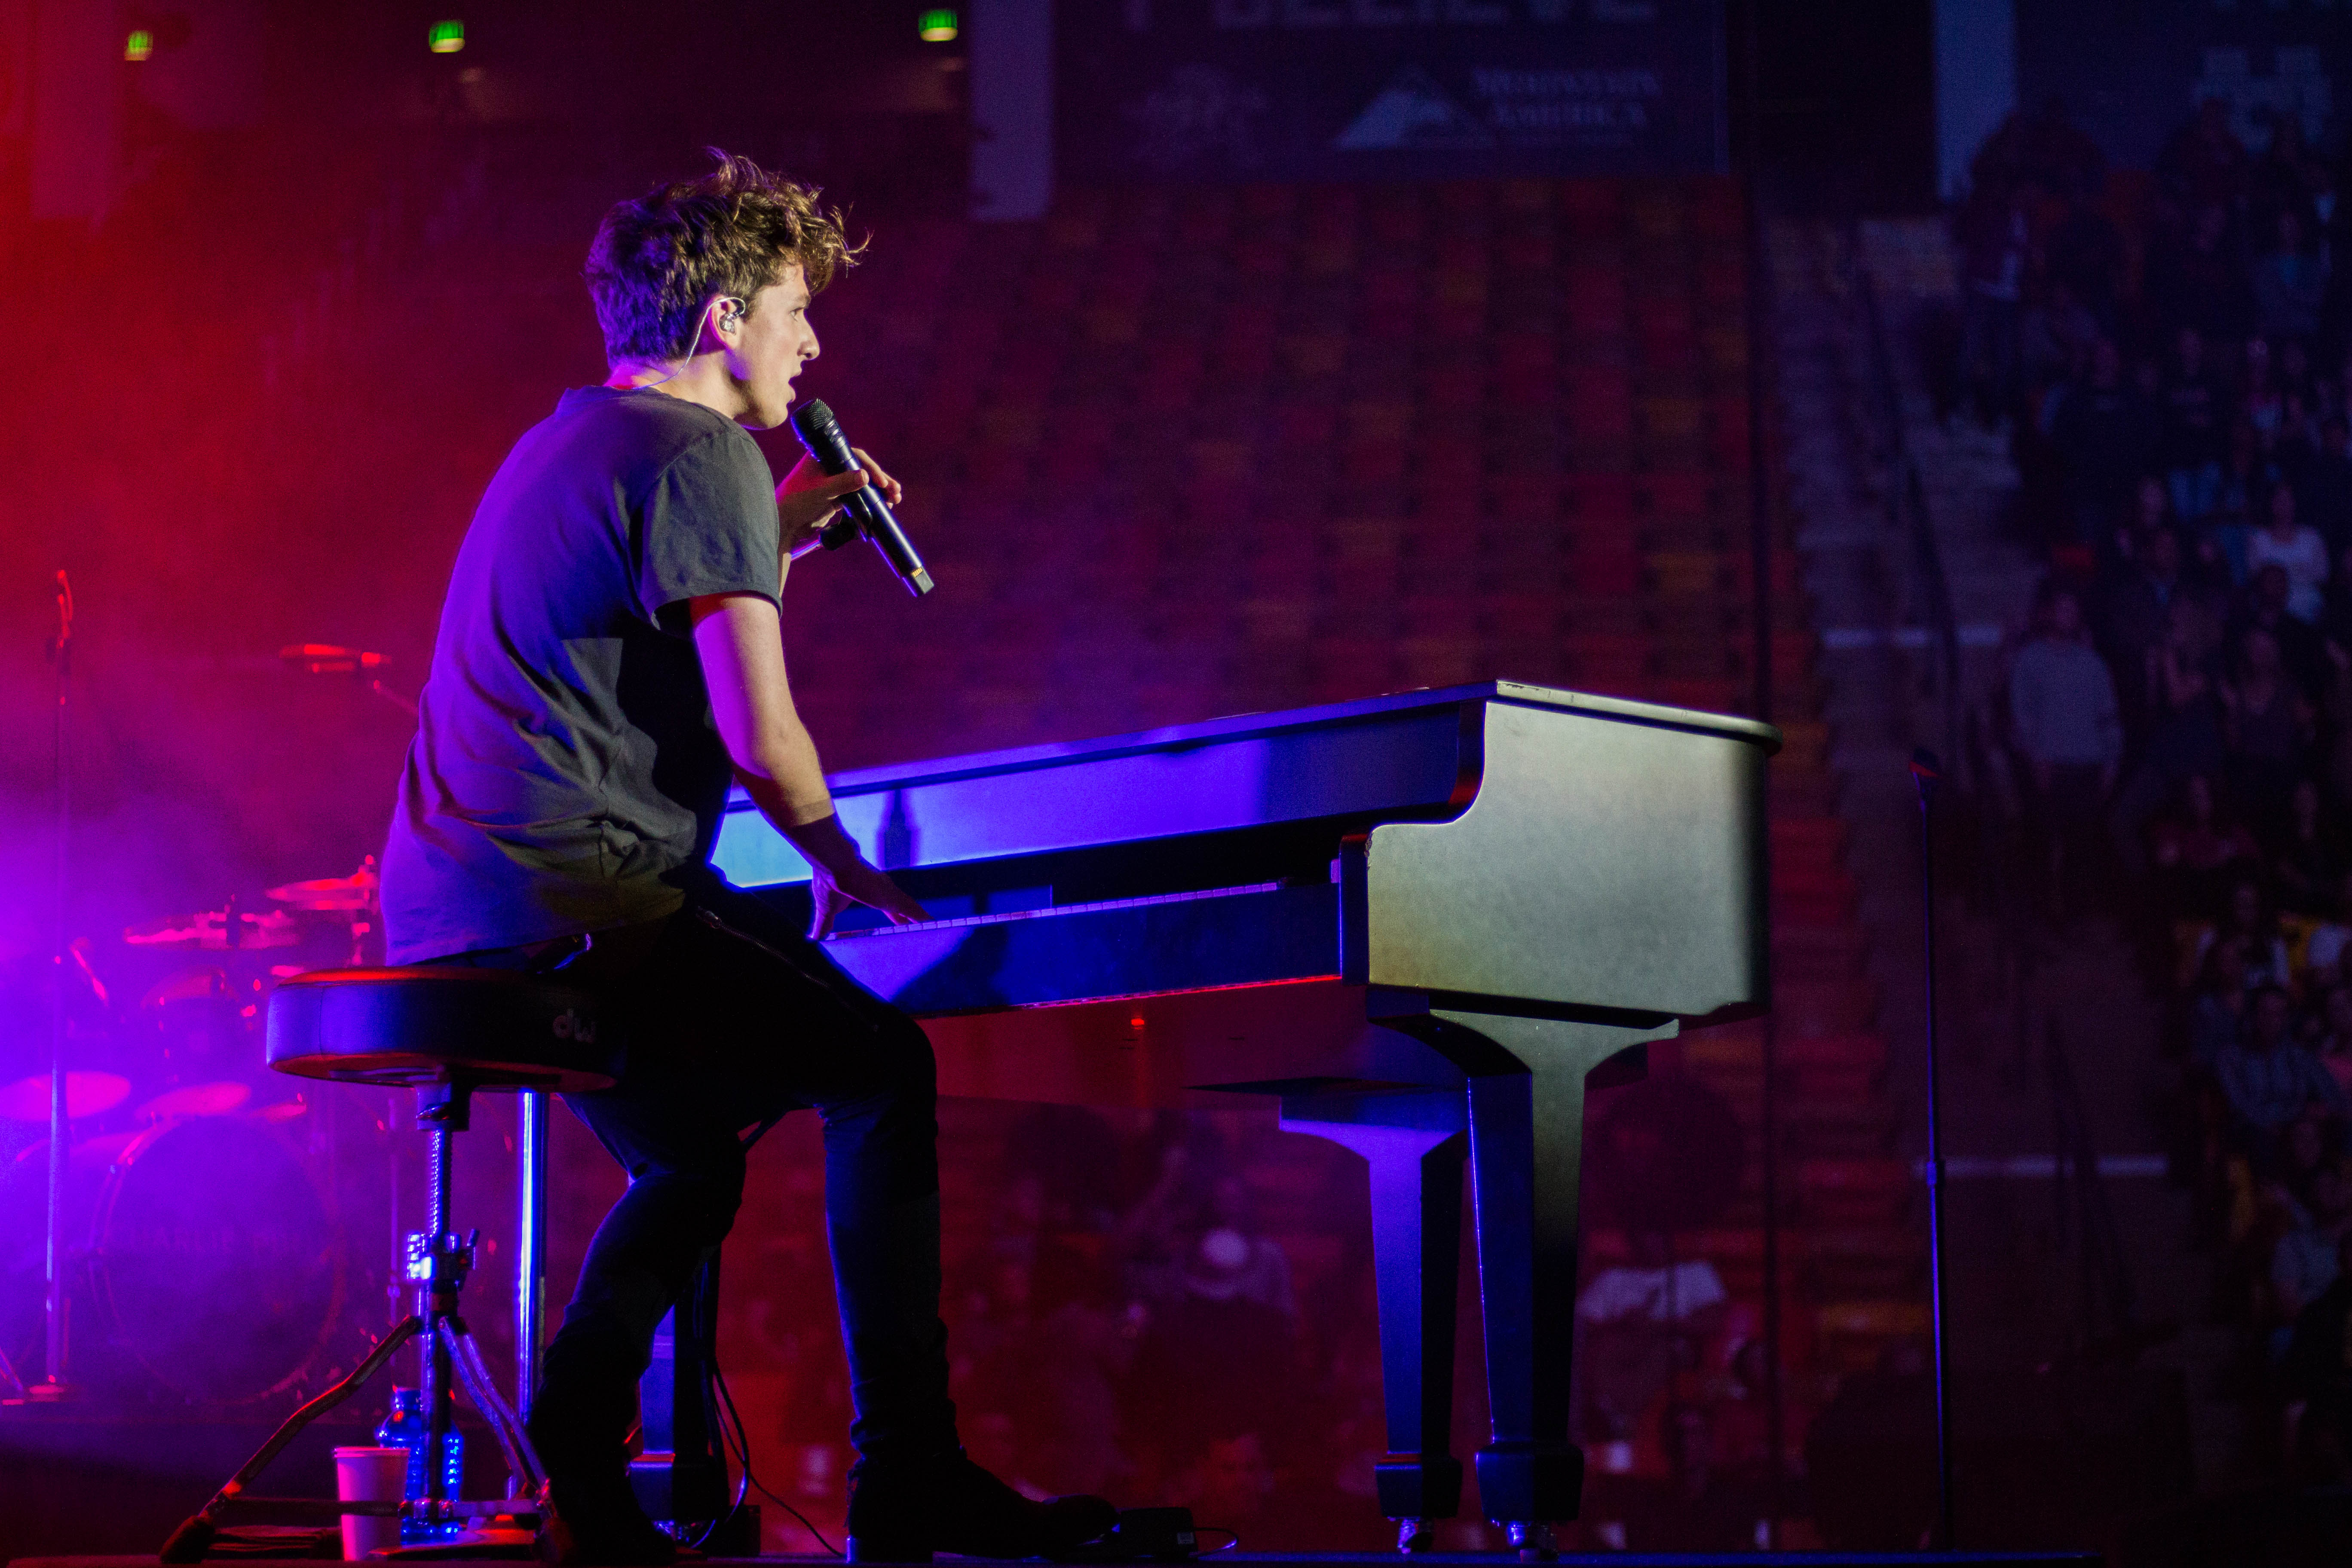 GALLERY: Charlie Puth Performs at Utah State Homecoming ...